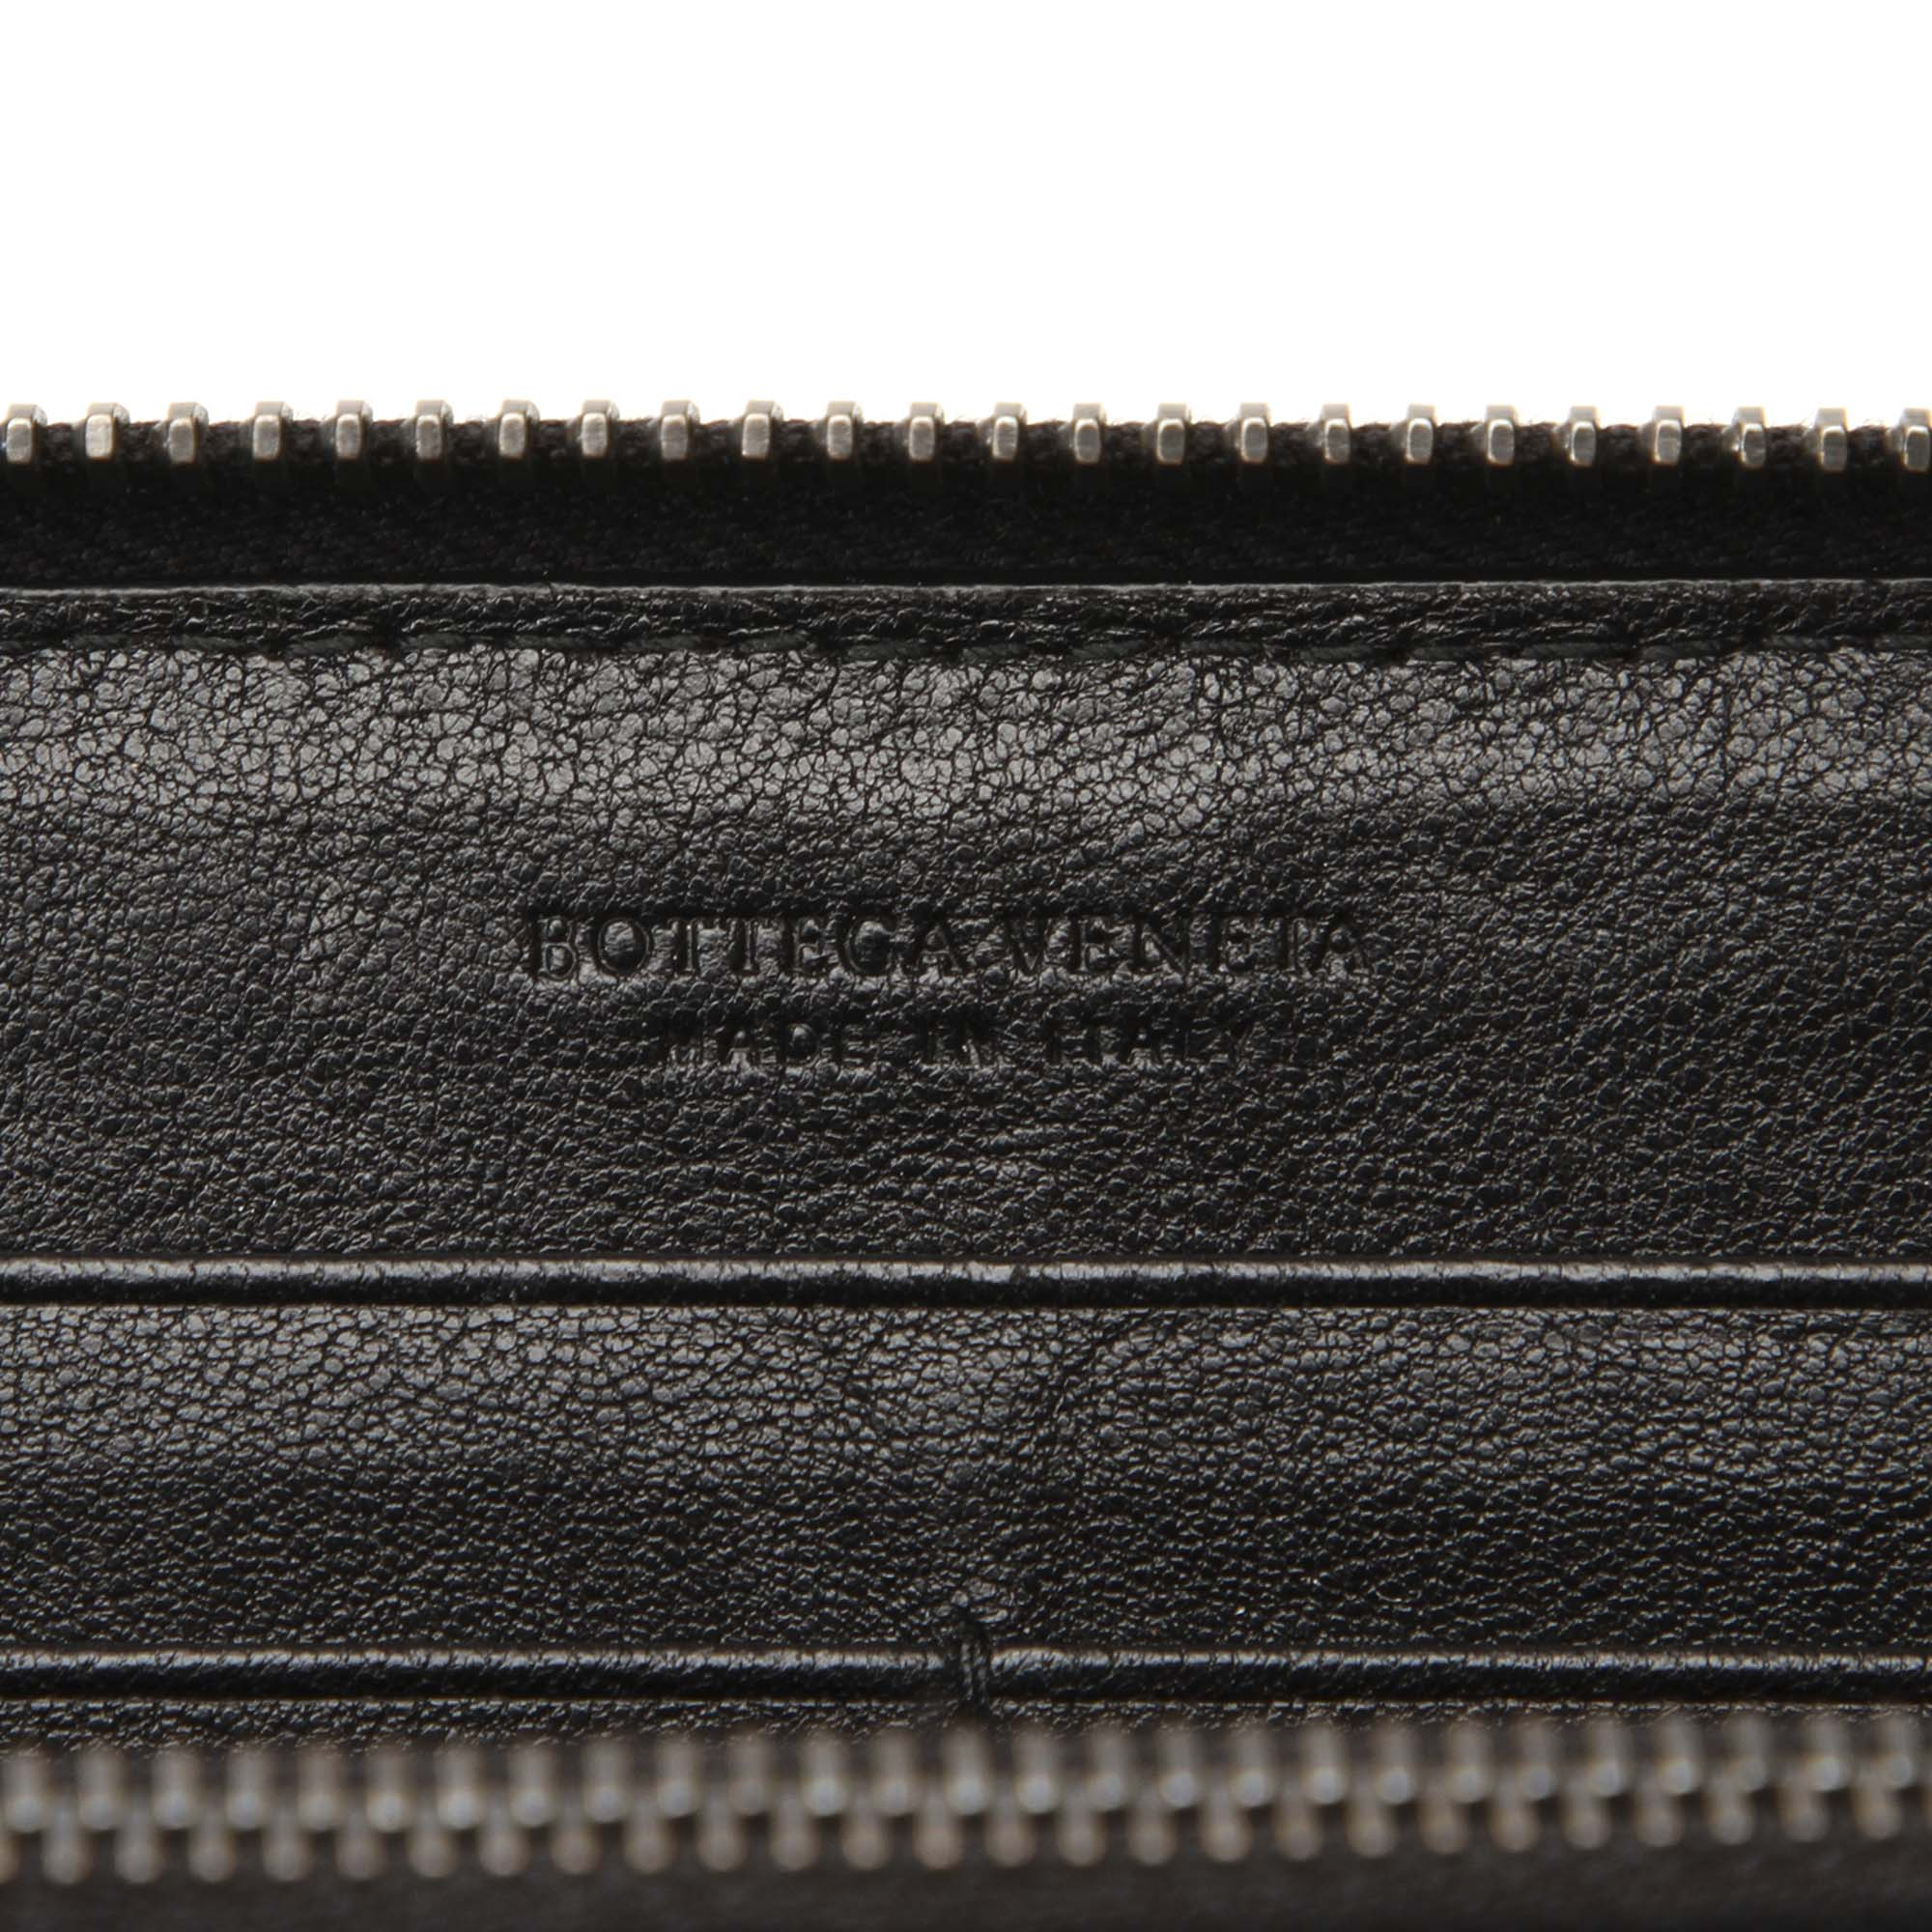 Bottega Veneta Black Intrecciato Leather Long Wallet